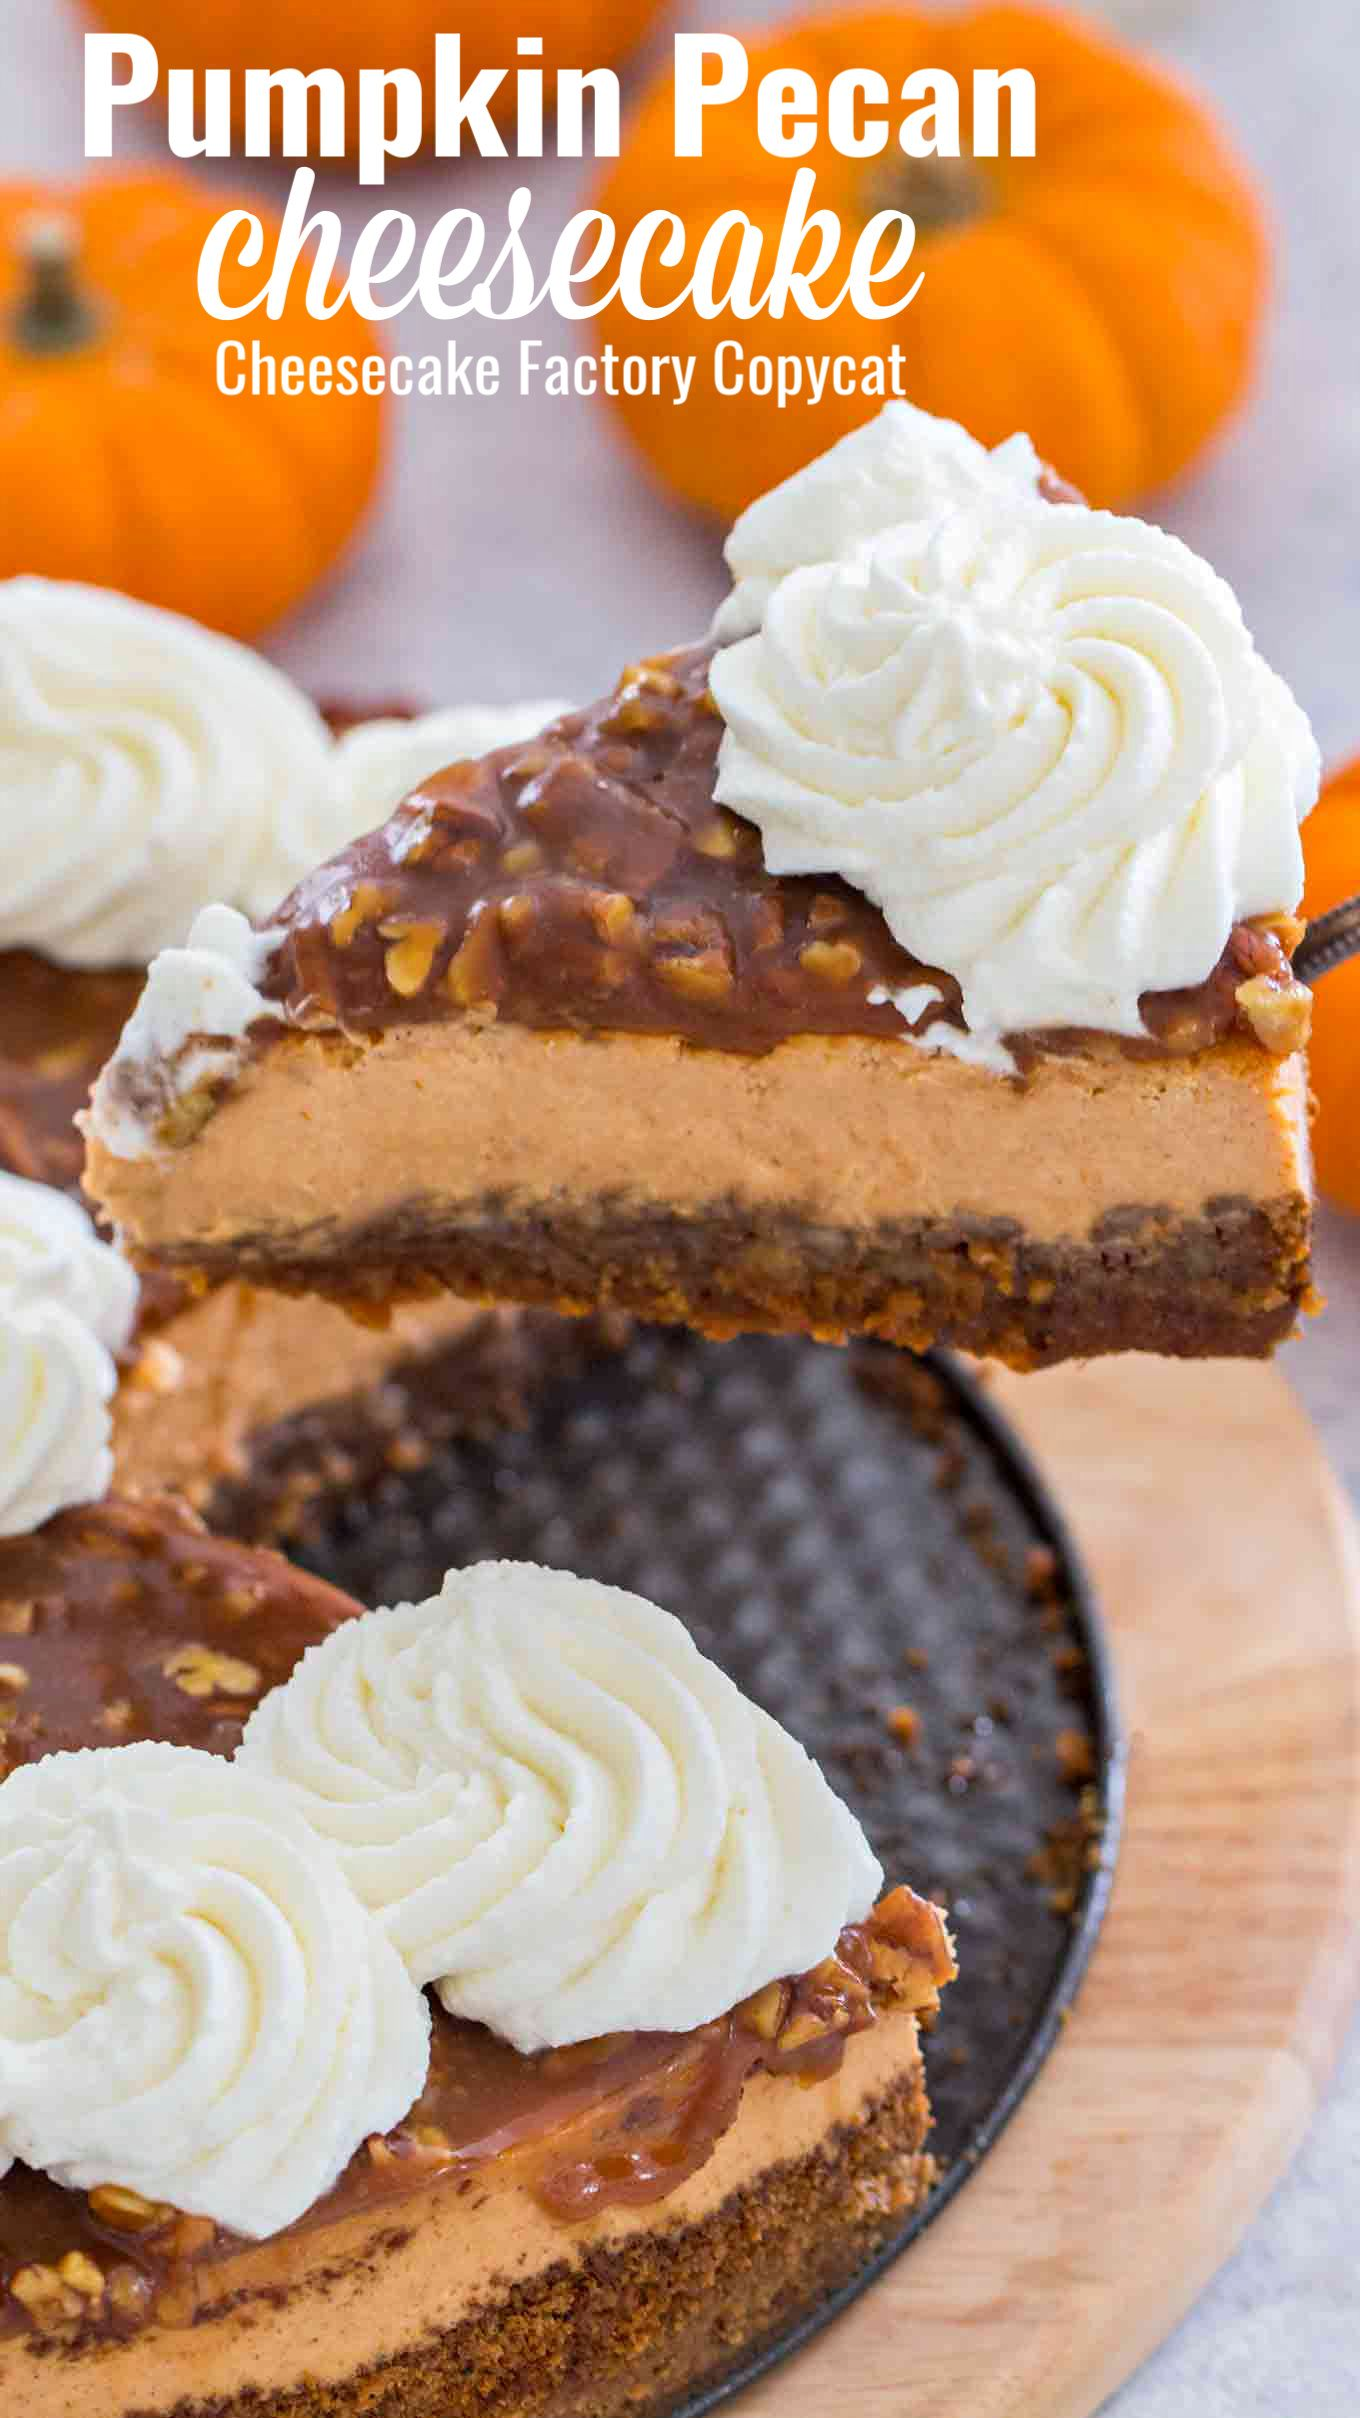 Pumpkin Pecan Pie Cheesecake Recipe Video Sweet And Savory Meals Recipe Pecan Cheesecake Recipes Pumpkin Pecan Cheesecake Pumpkin Cheesecake